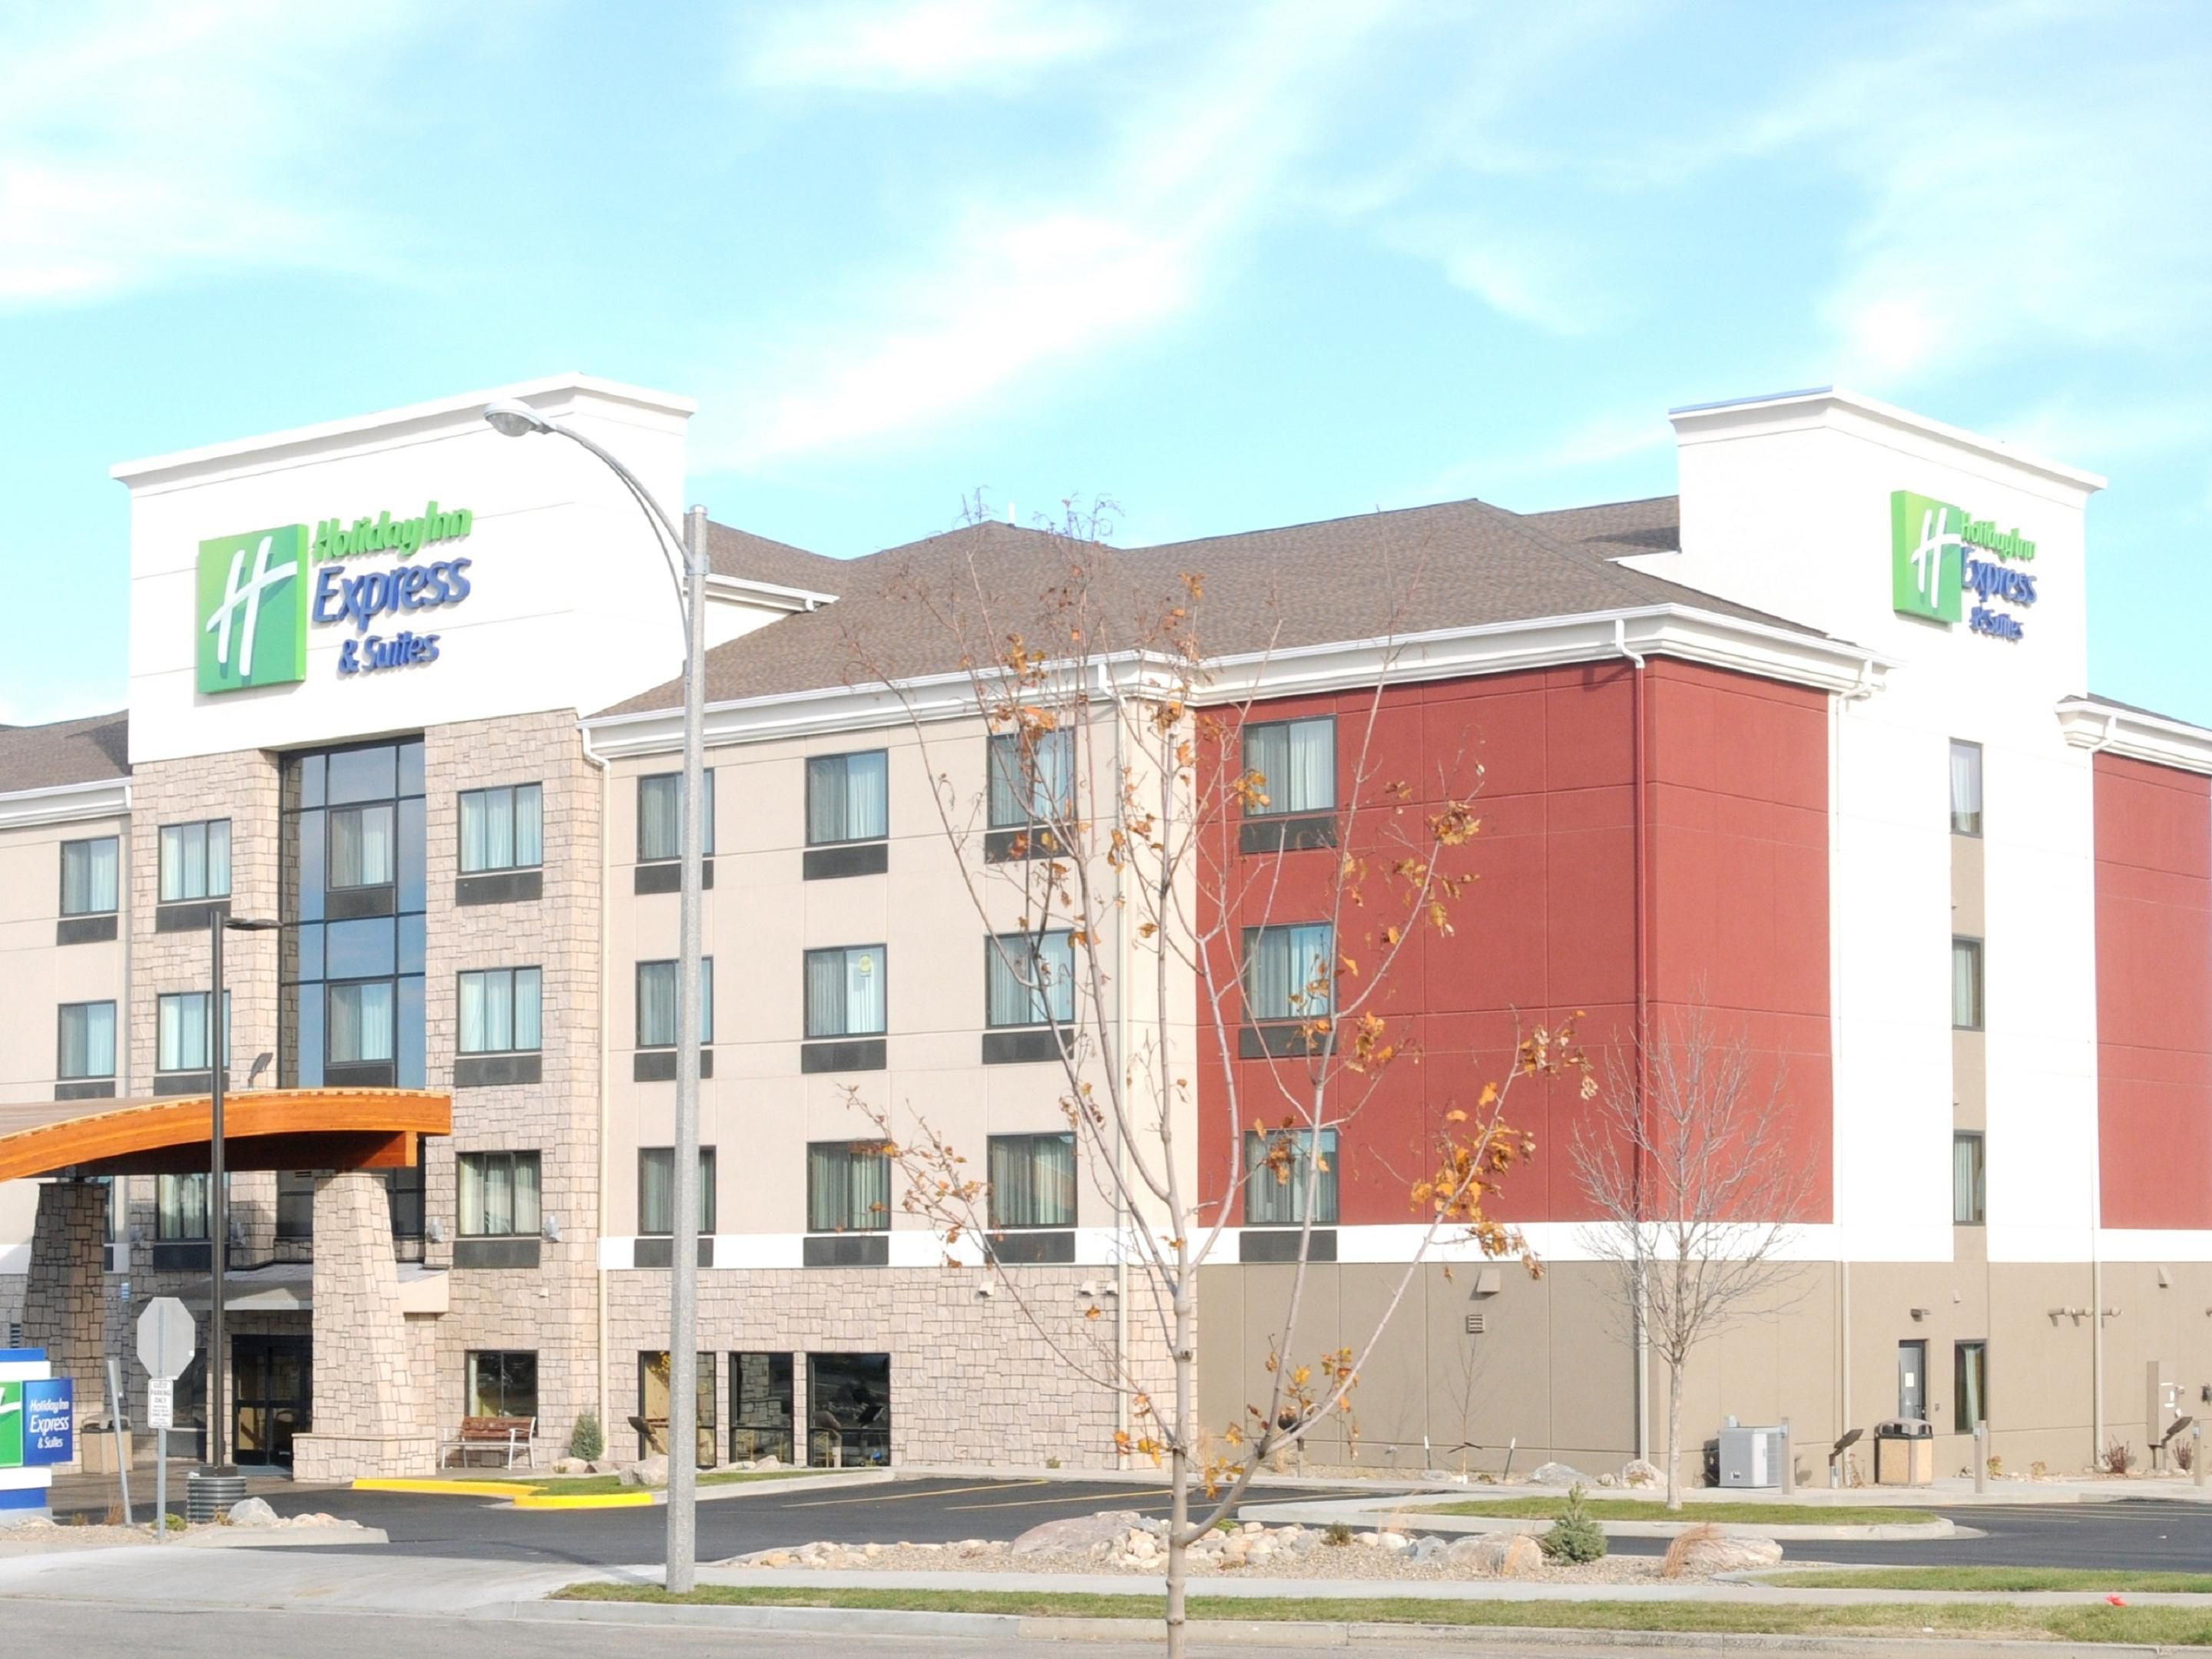 Welcome to the Holiday Inn Express & Suites in Bismarck